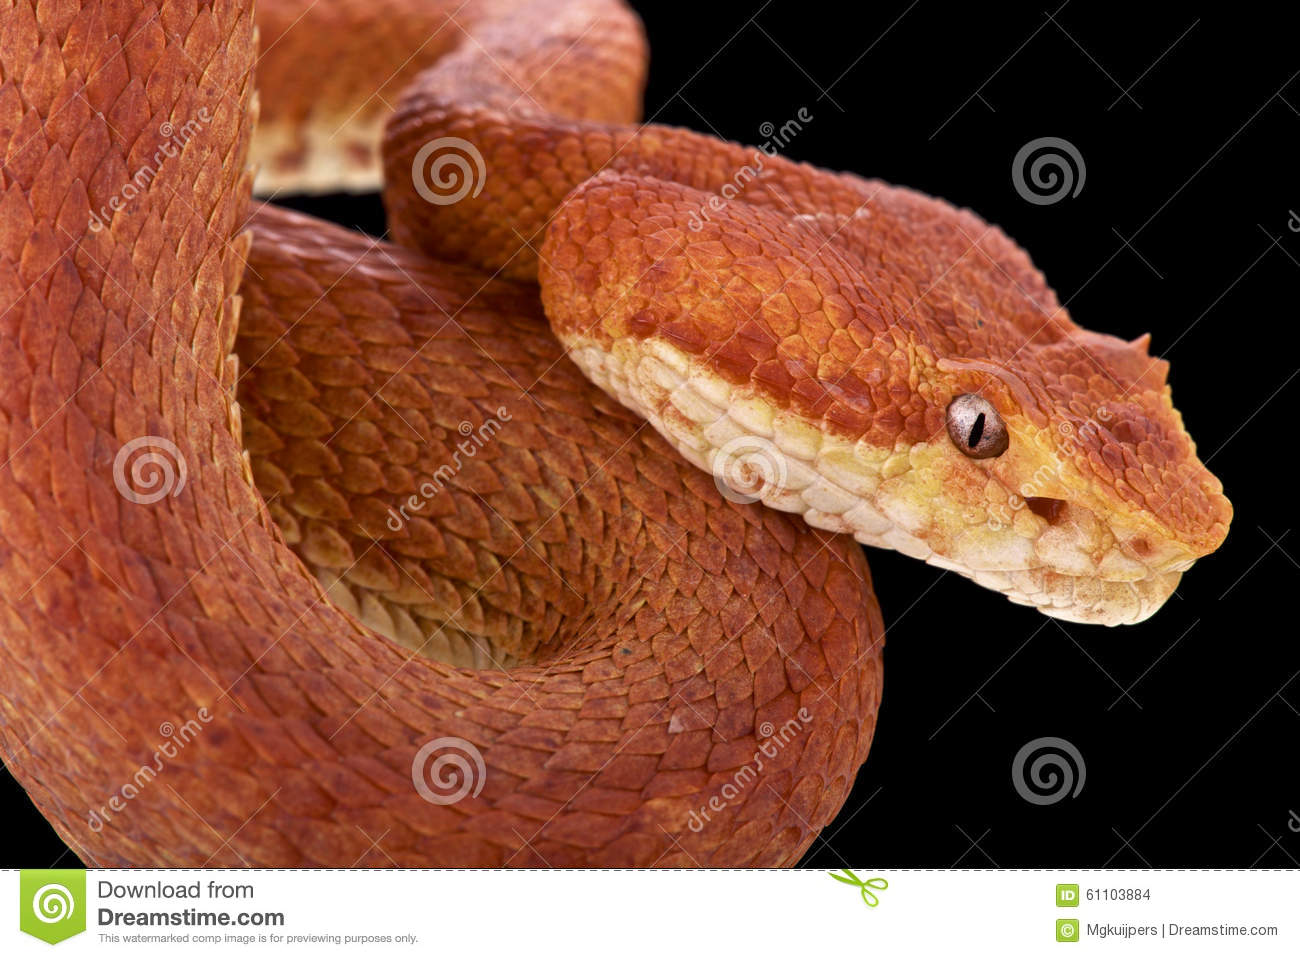 Eyelash Viper Bothriechis Schlegelii Stock Photo Image Of